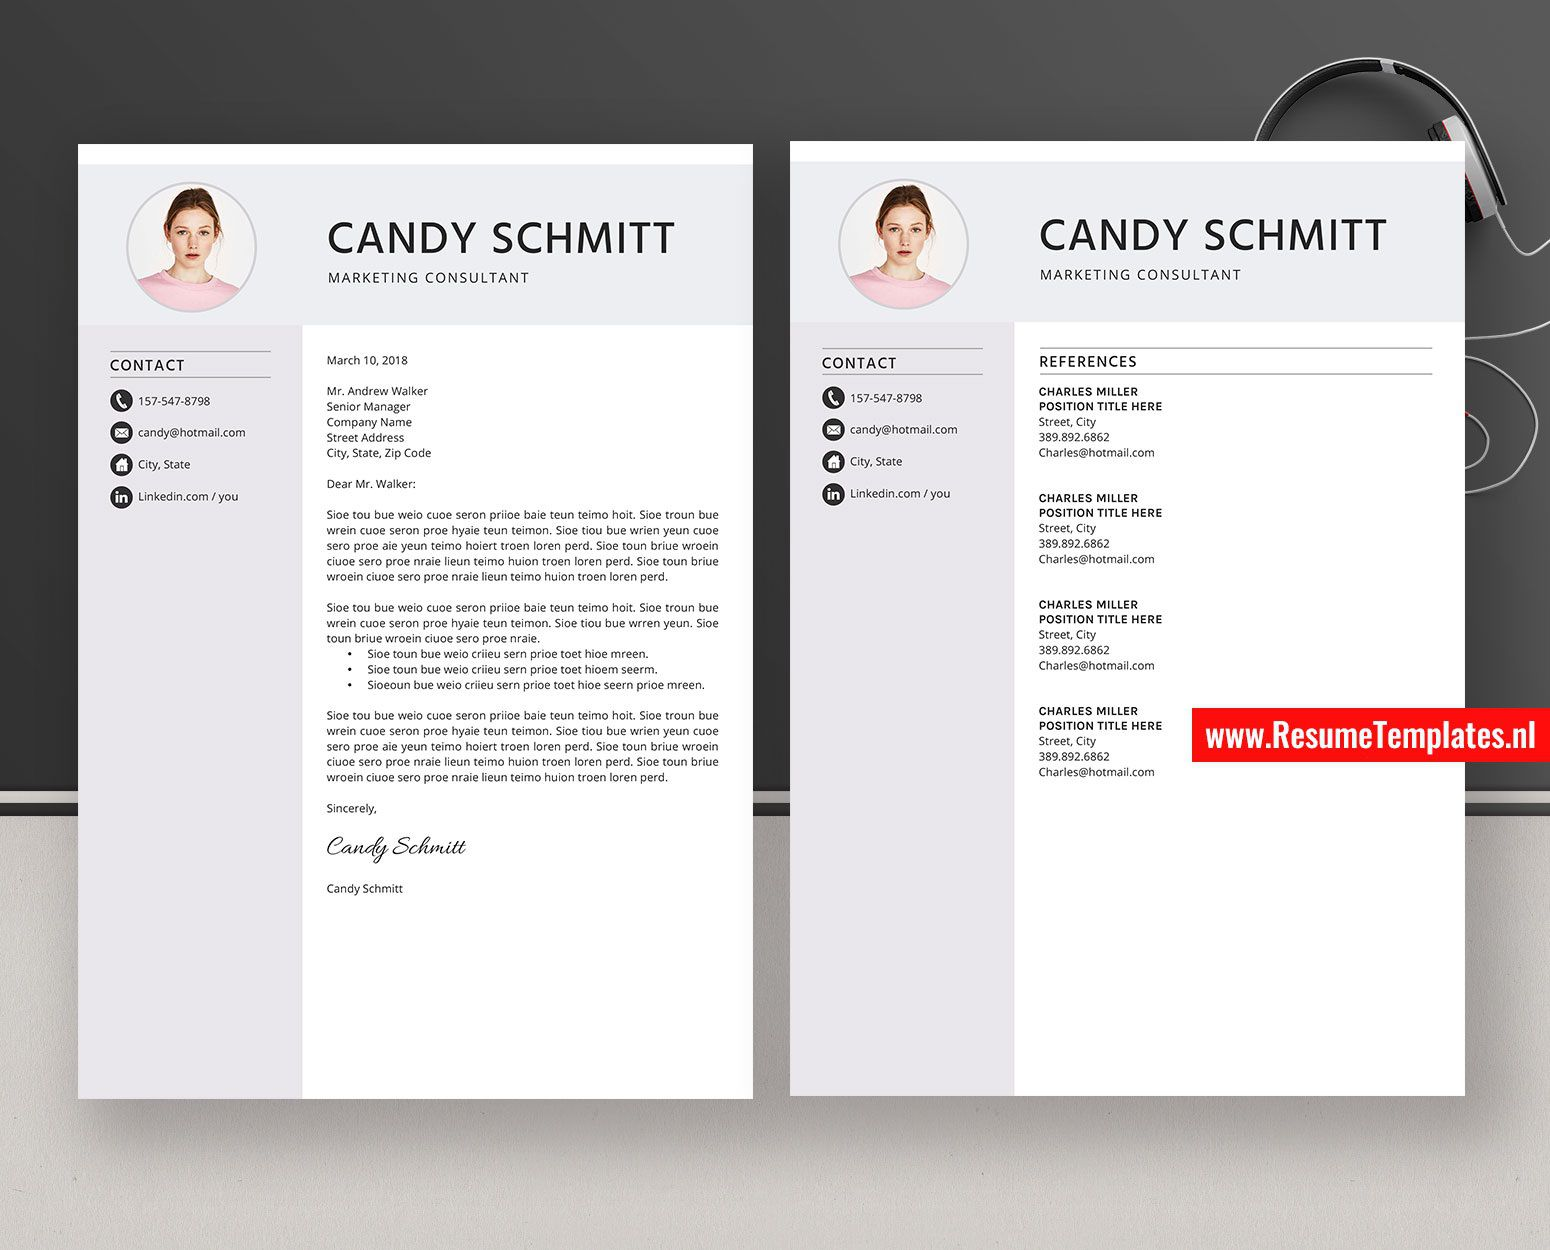 008 Awful Window Resume Cover Letter Template High Def  TemplatesFull